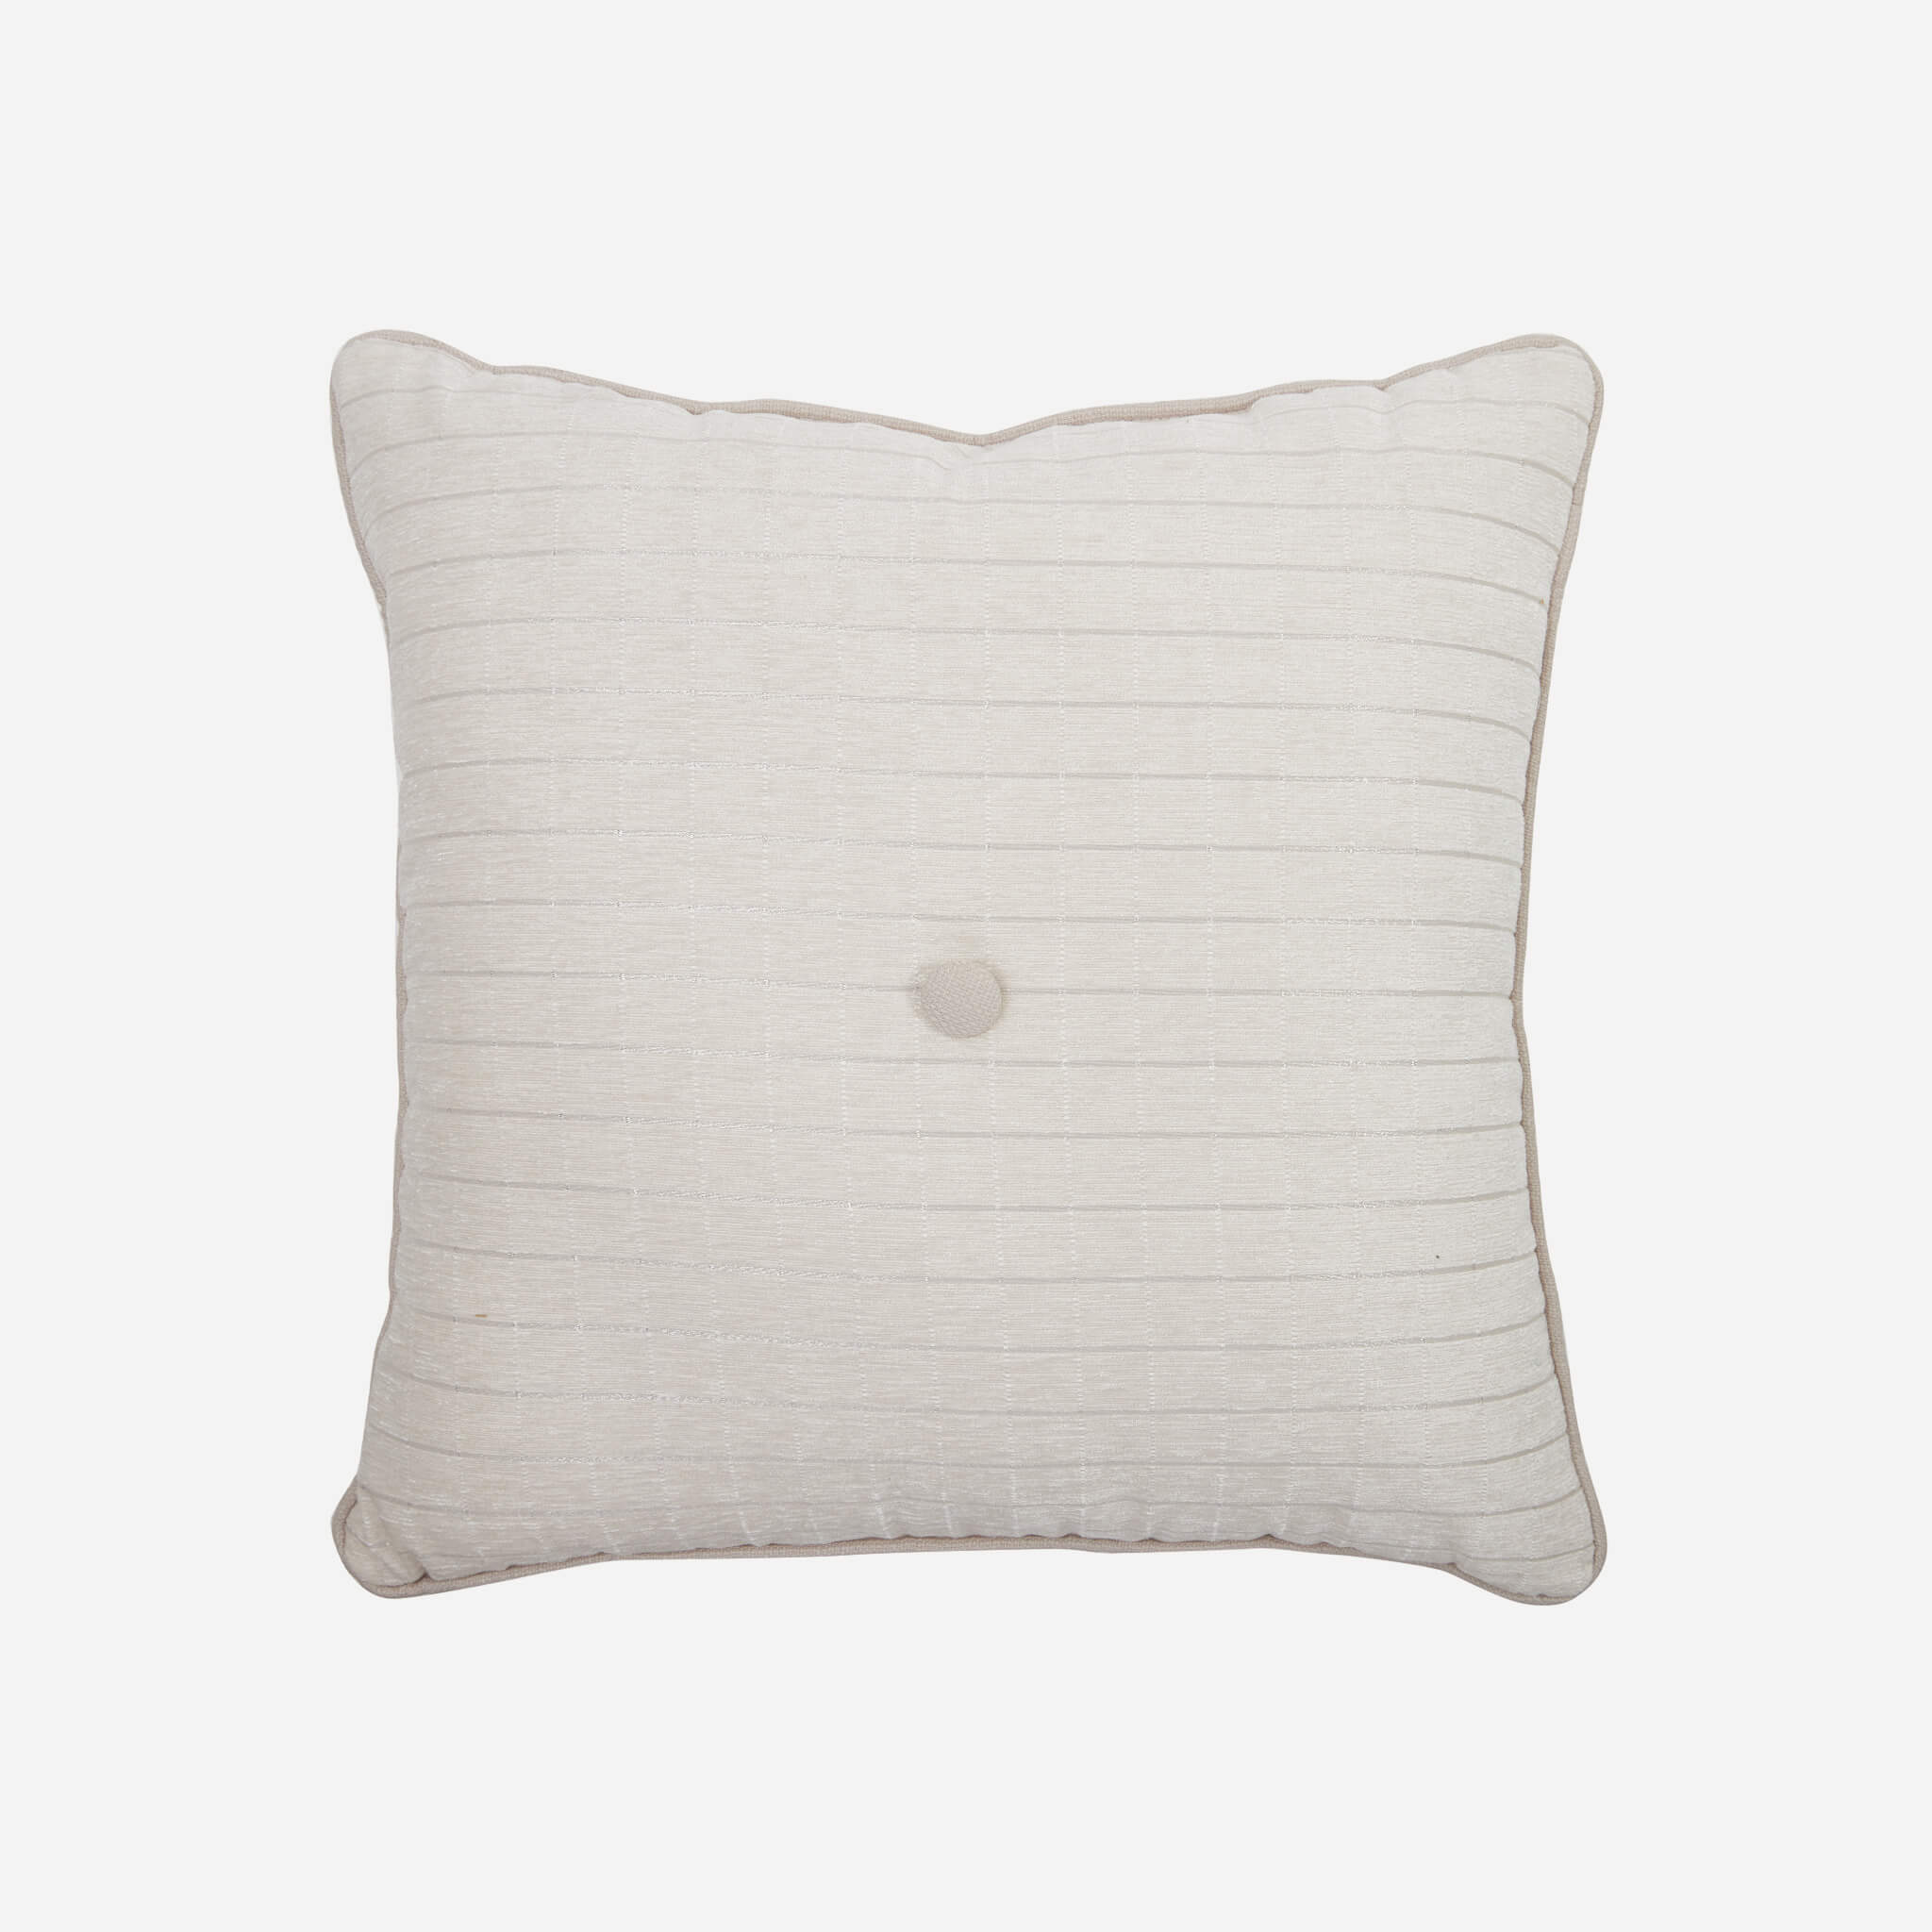 "Bela Multi Fashion Pillow 18"" x 18"" By Croscill Throw Pillows By Croscill Home LLC"